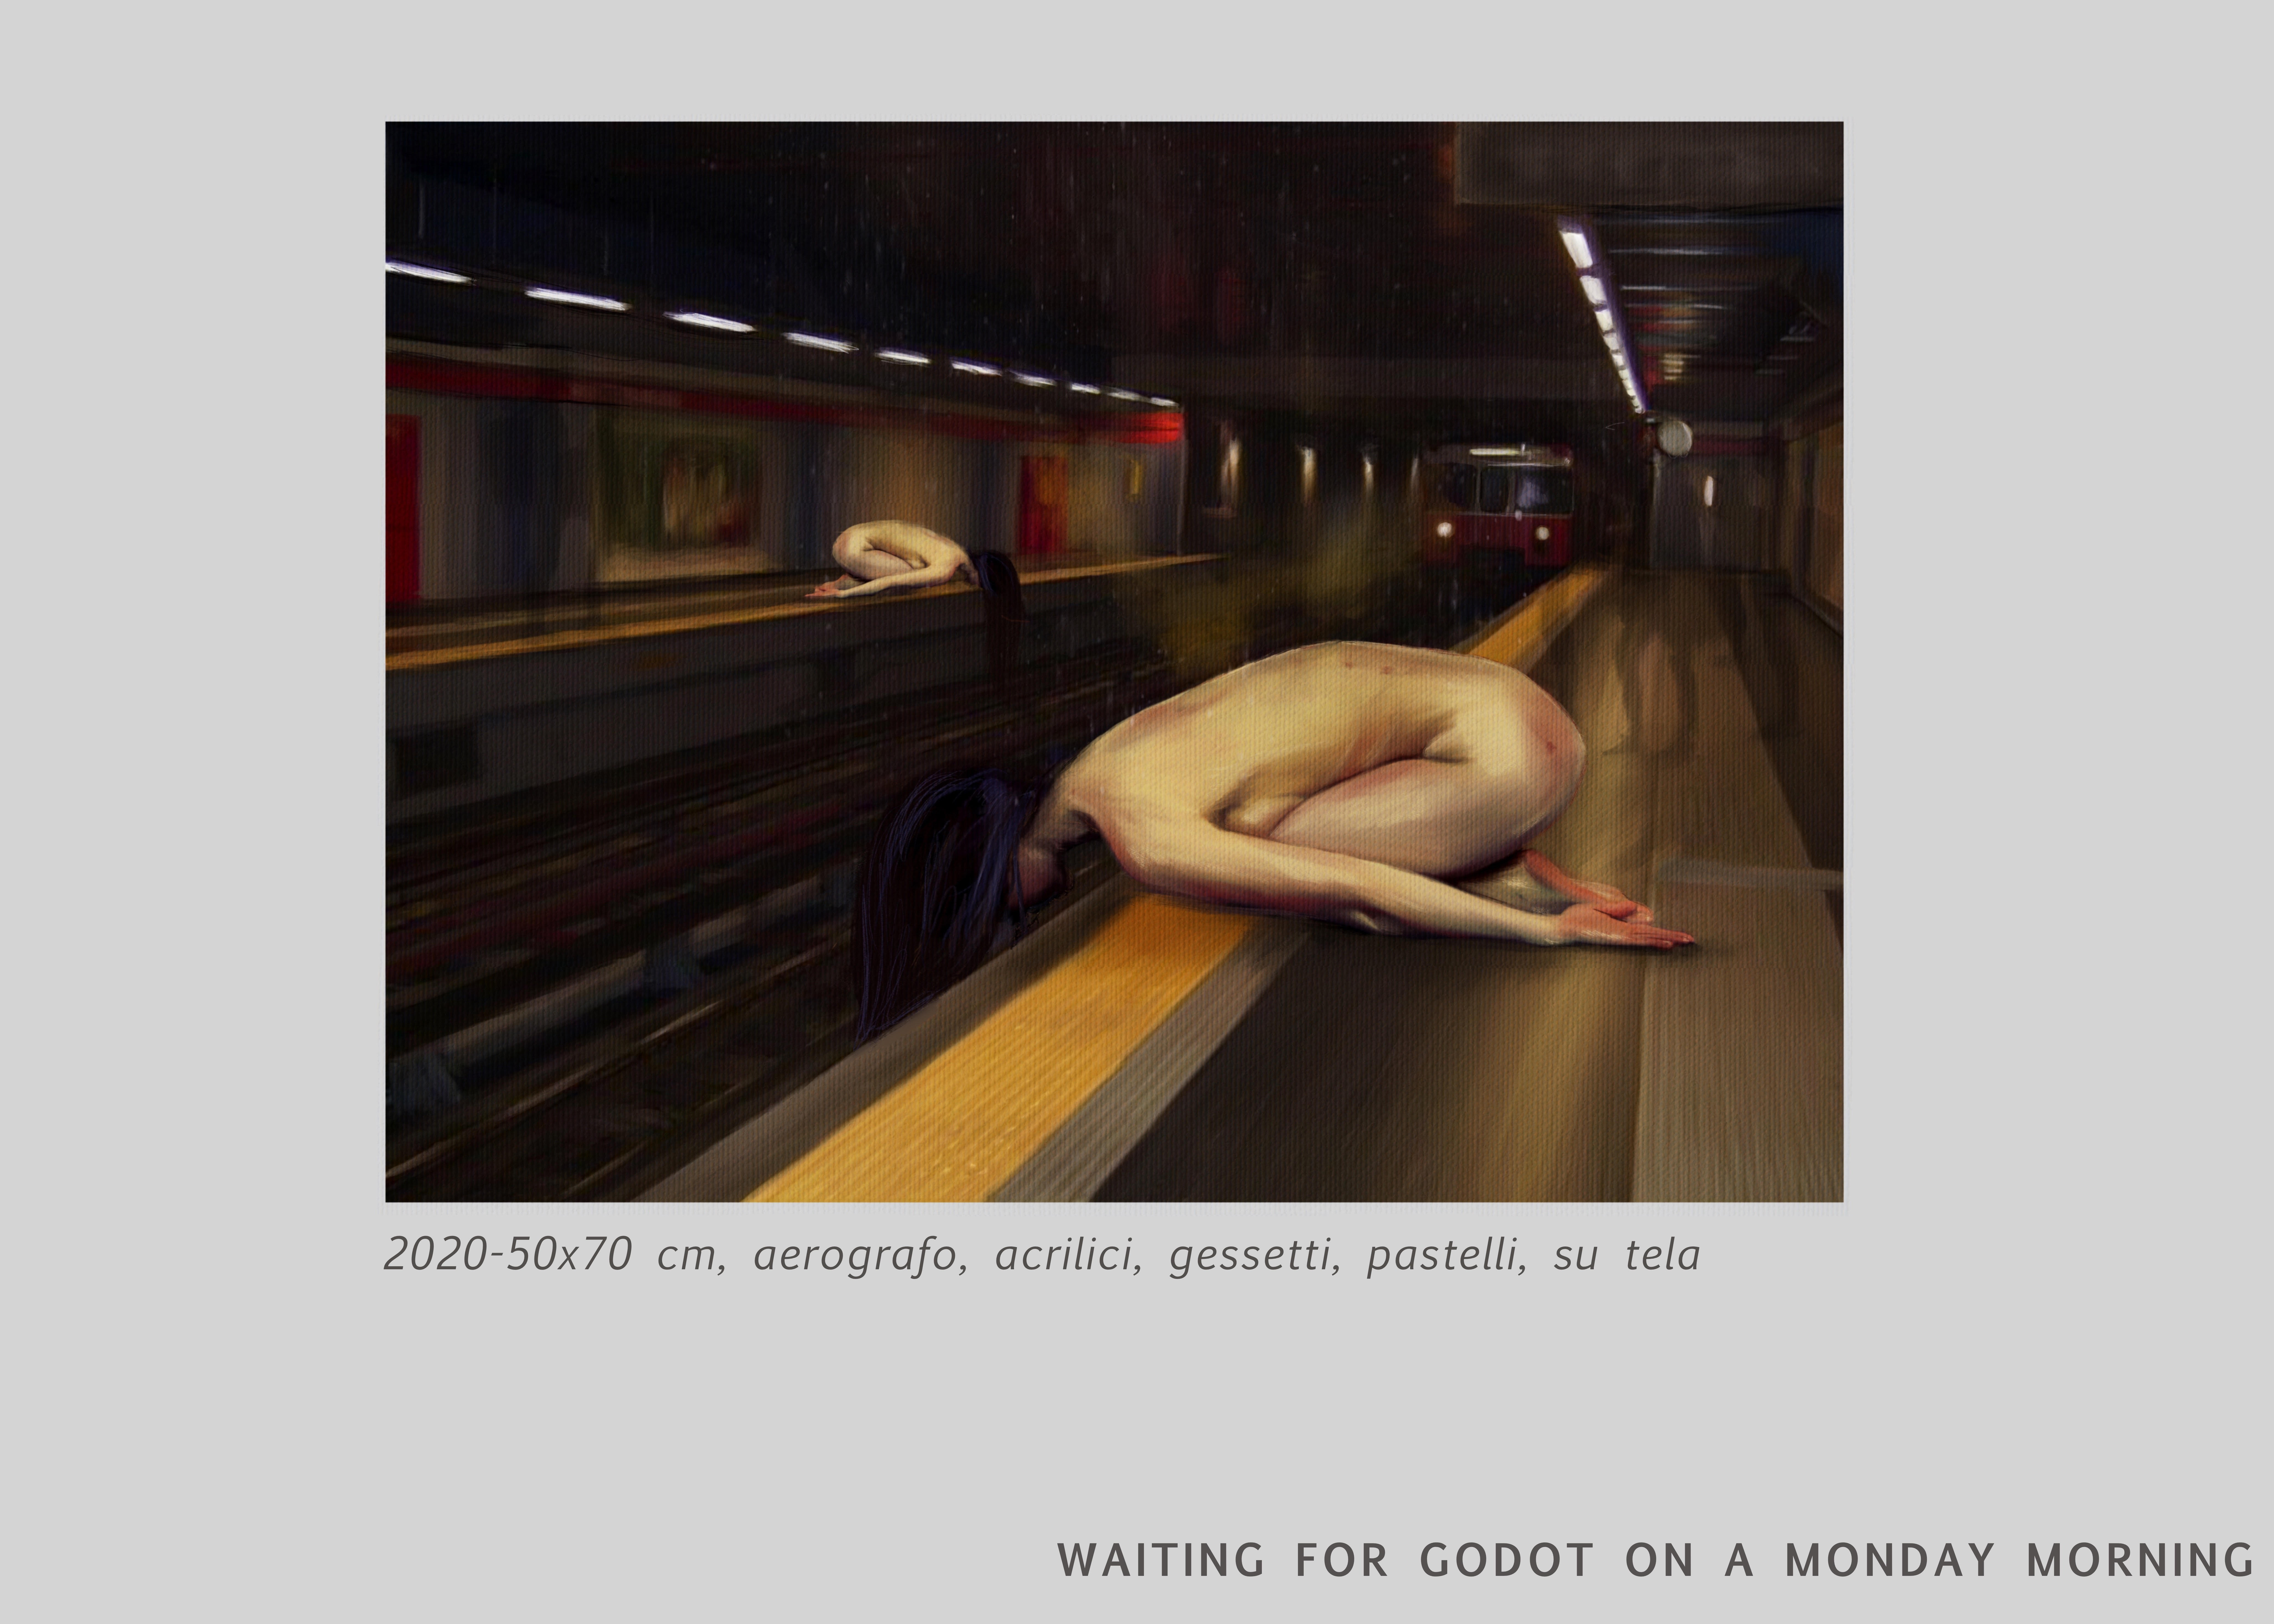 WAITING FOR GODOT ON A MONDAY MORNING-CHIARA LUISE